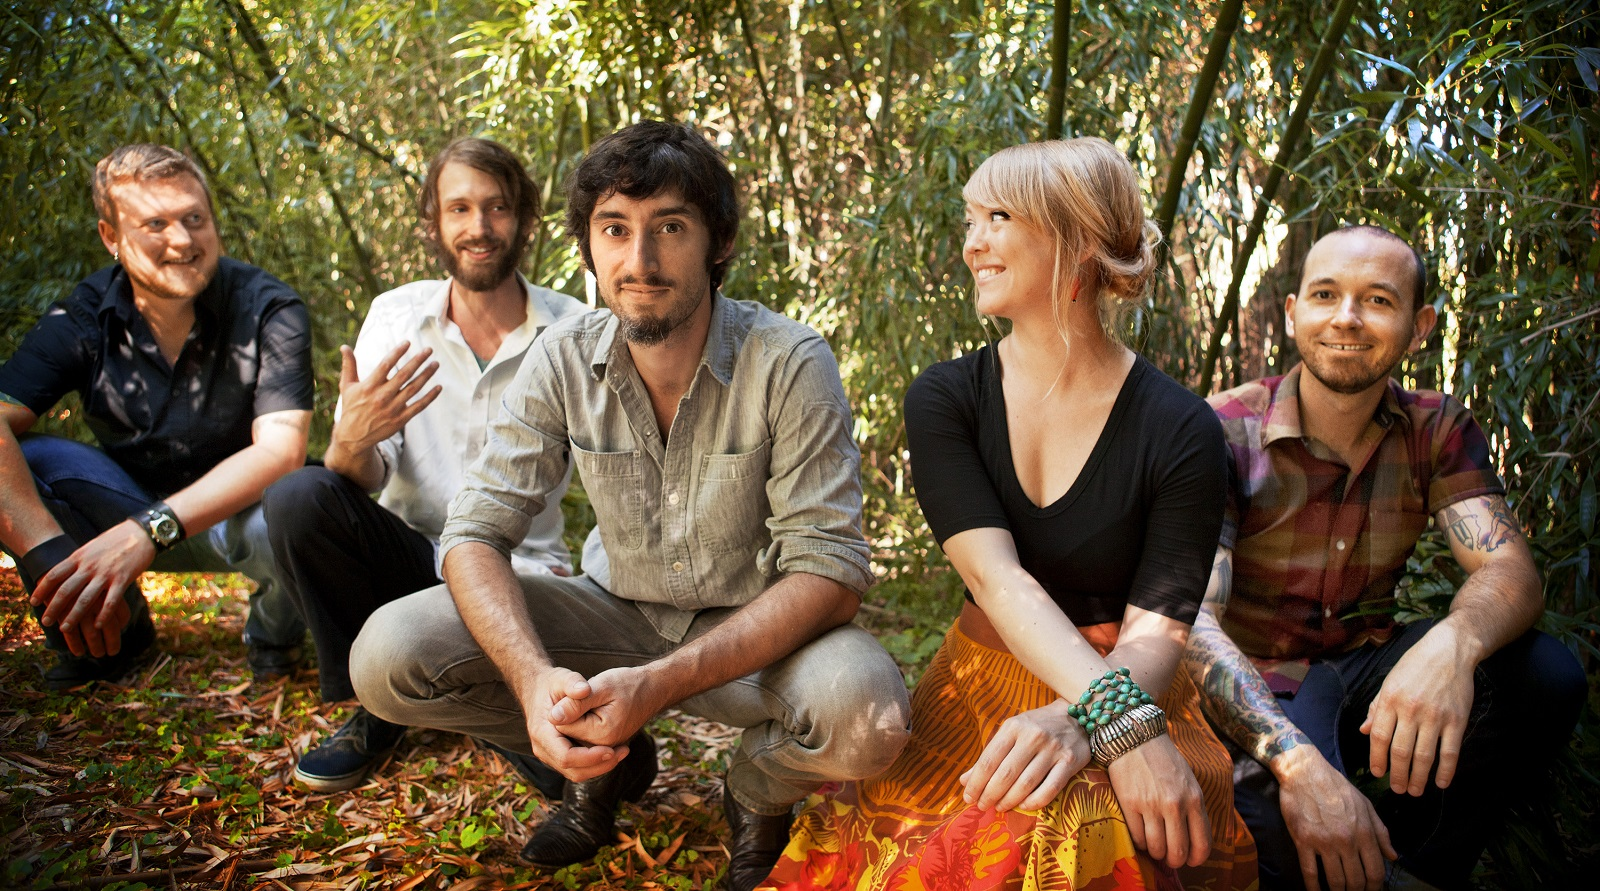 Murder By Death band, from left to right, is Matt Armstrong, Scott Brackett, Adam Turla, Sarah Balliet, Dagan Thogerson.